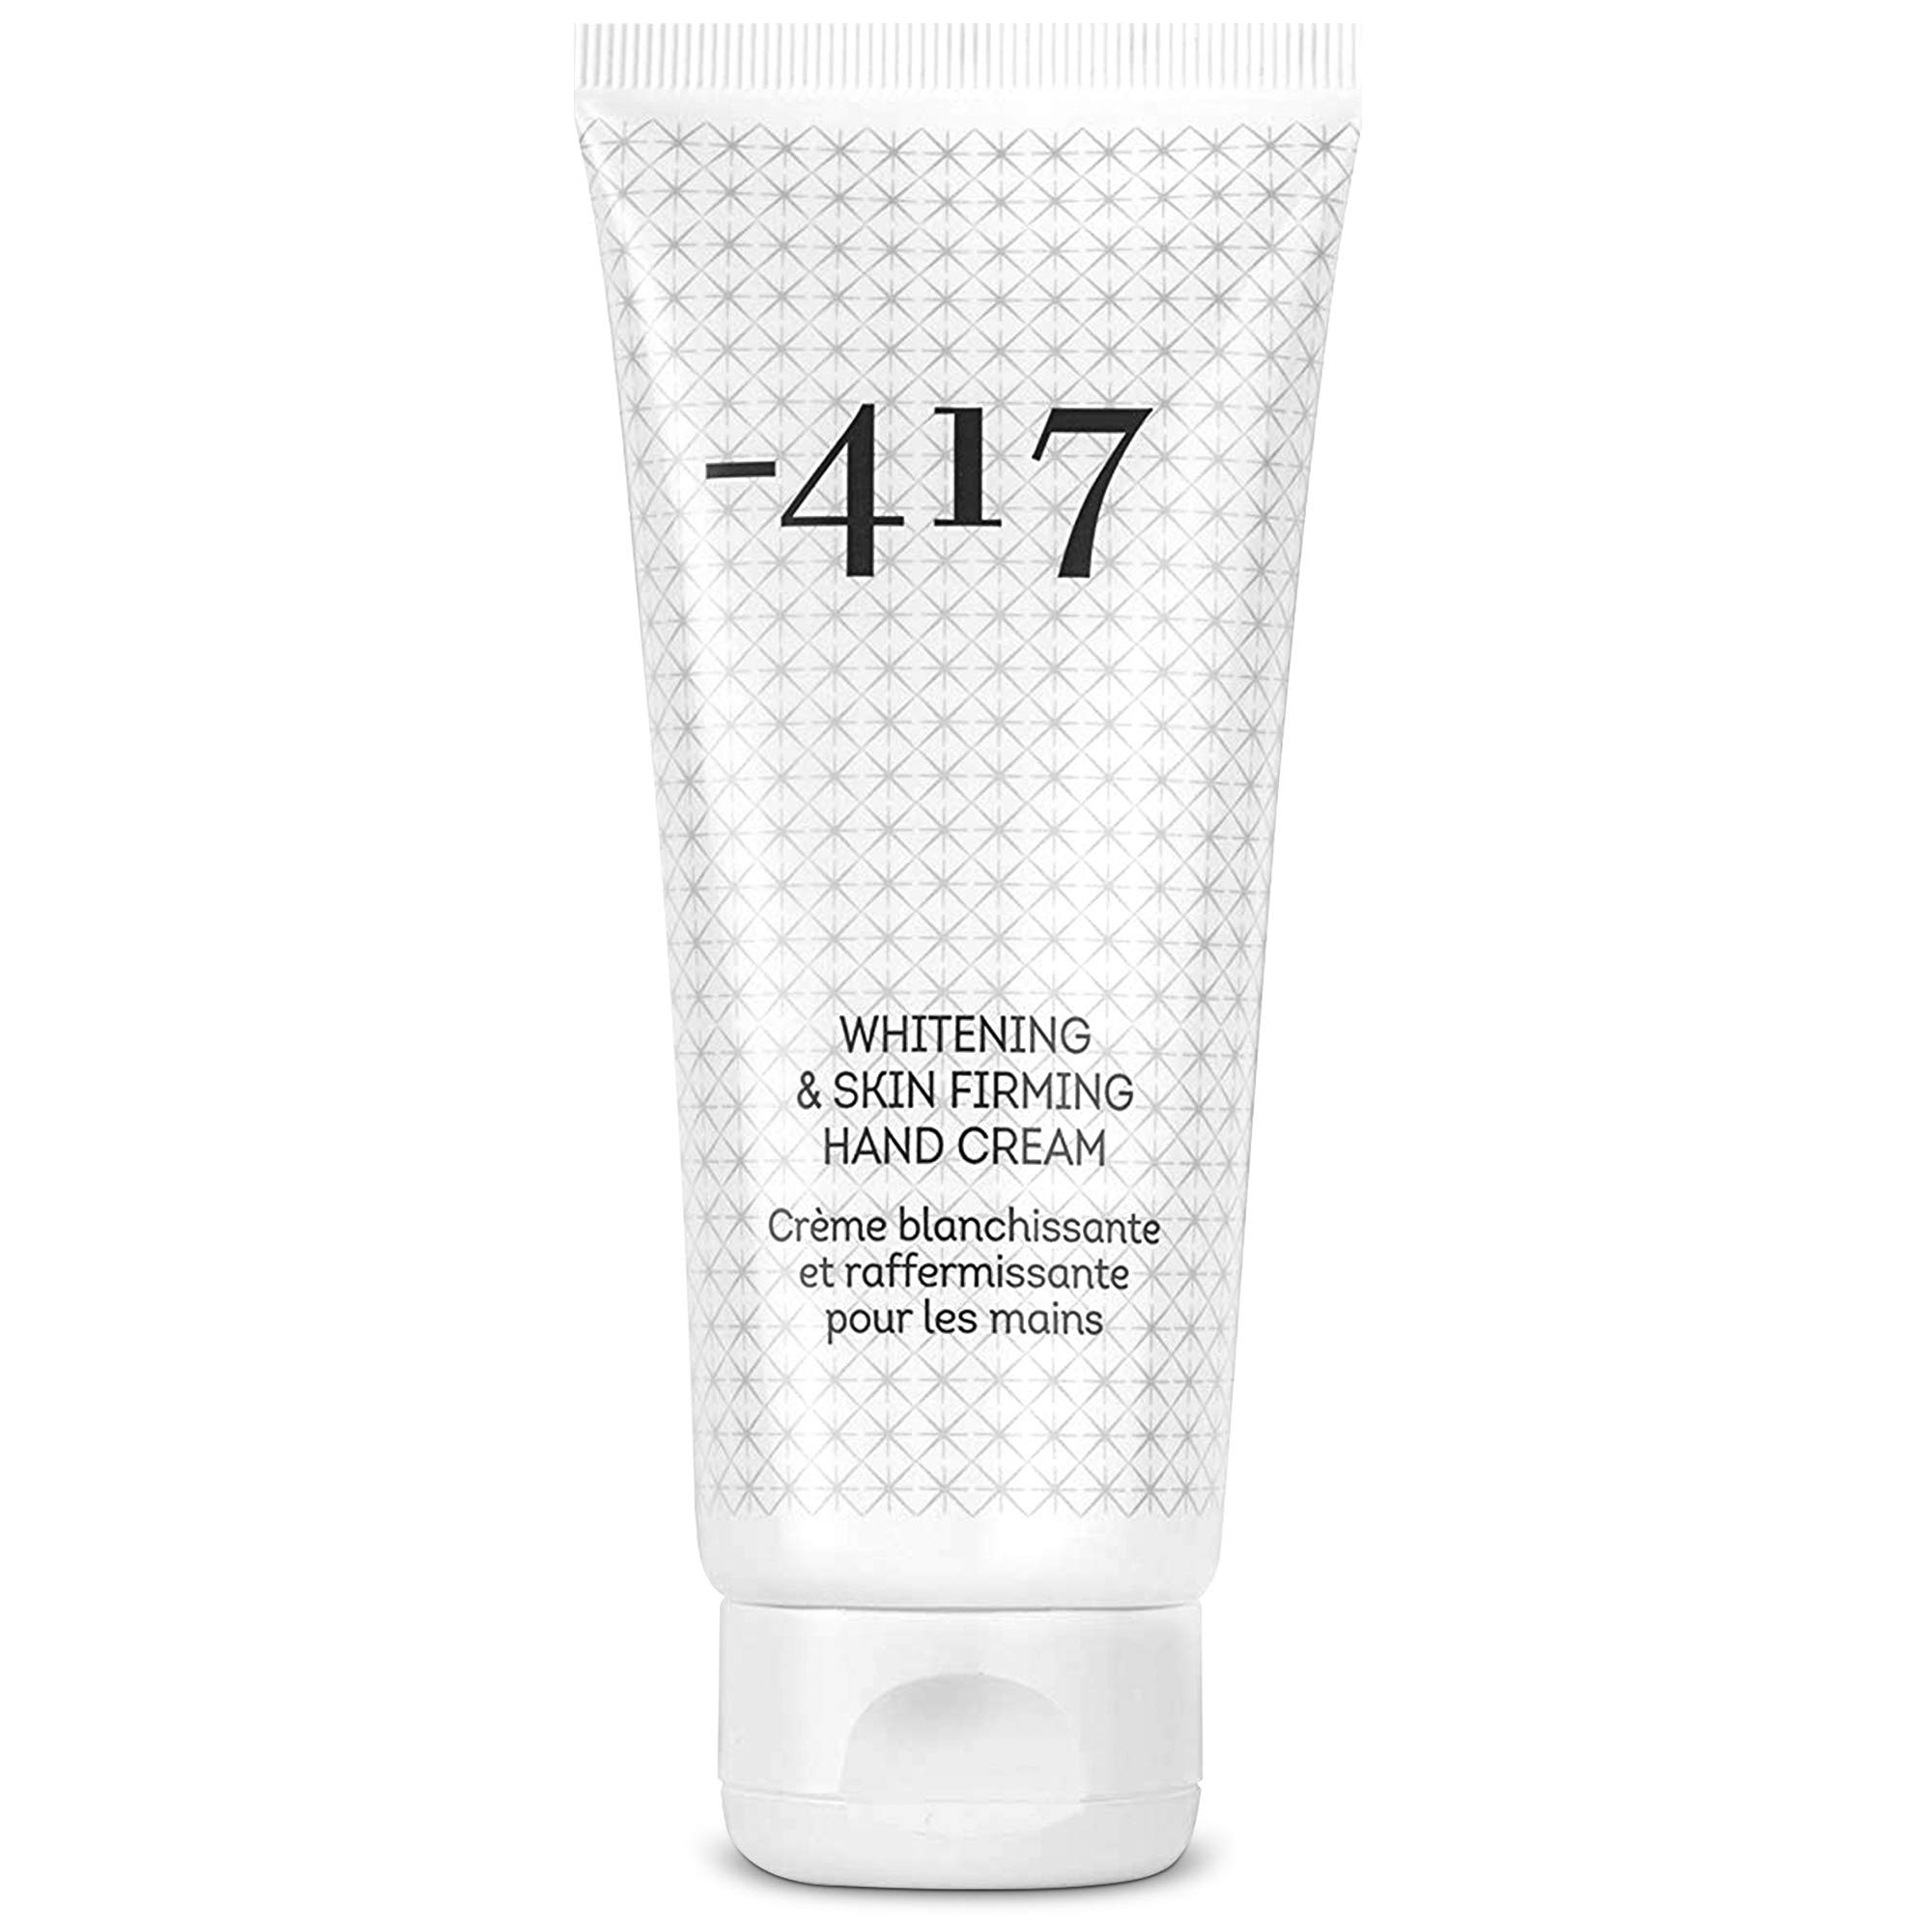 -417 Whitening & Skin Firming Hand Cream For Dry, Cracked Skin & Working Hands features Essential Vitamins & Oils From The Dead-Sea, Say Yes To Silky Smooth Hands With Our Anti Aging Hand Moisturizer